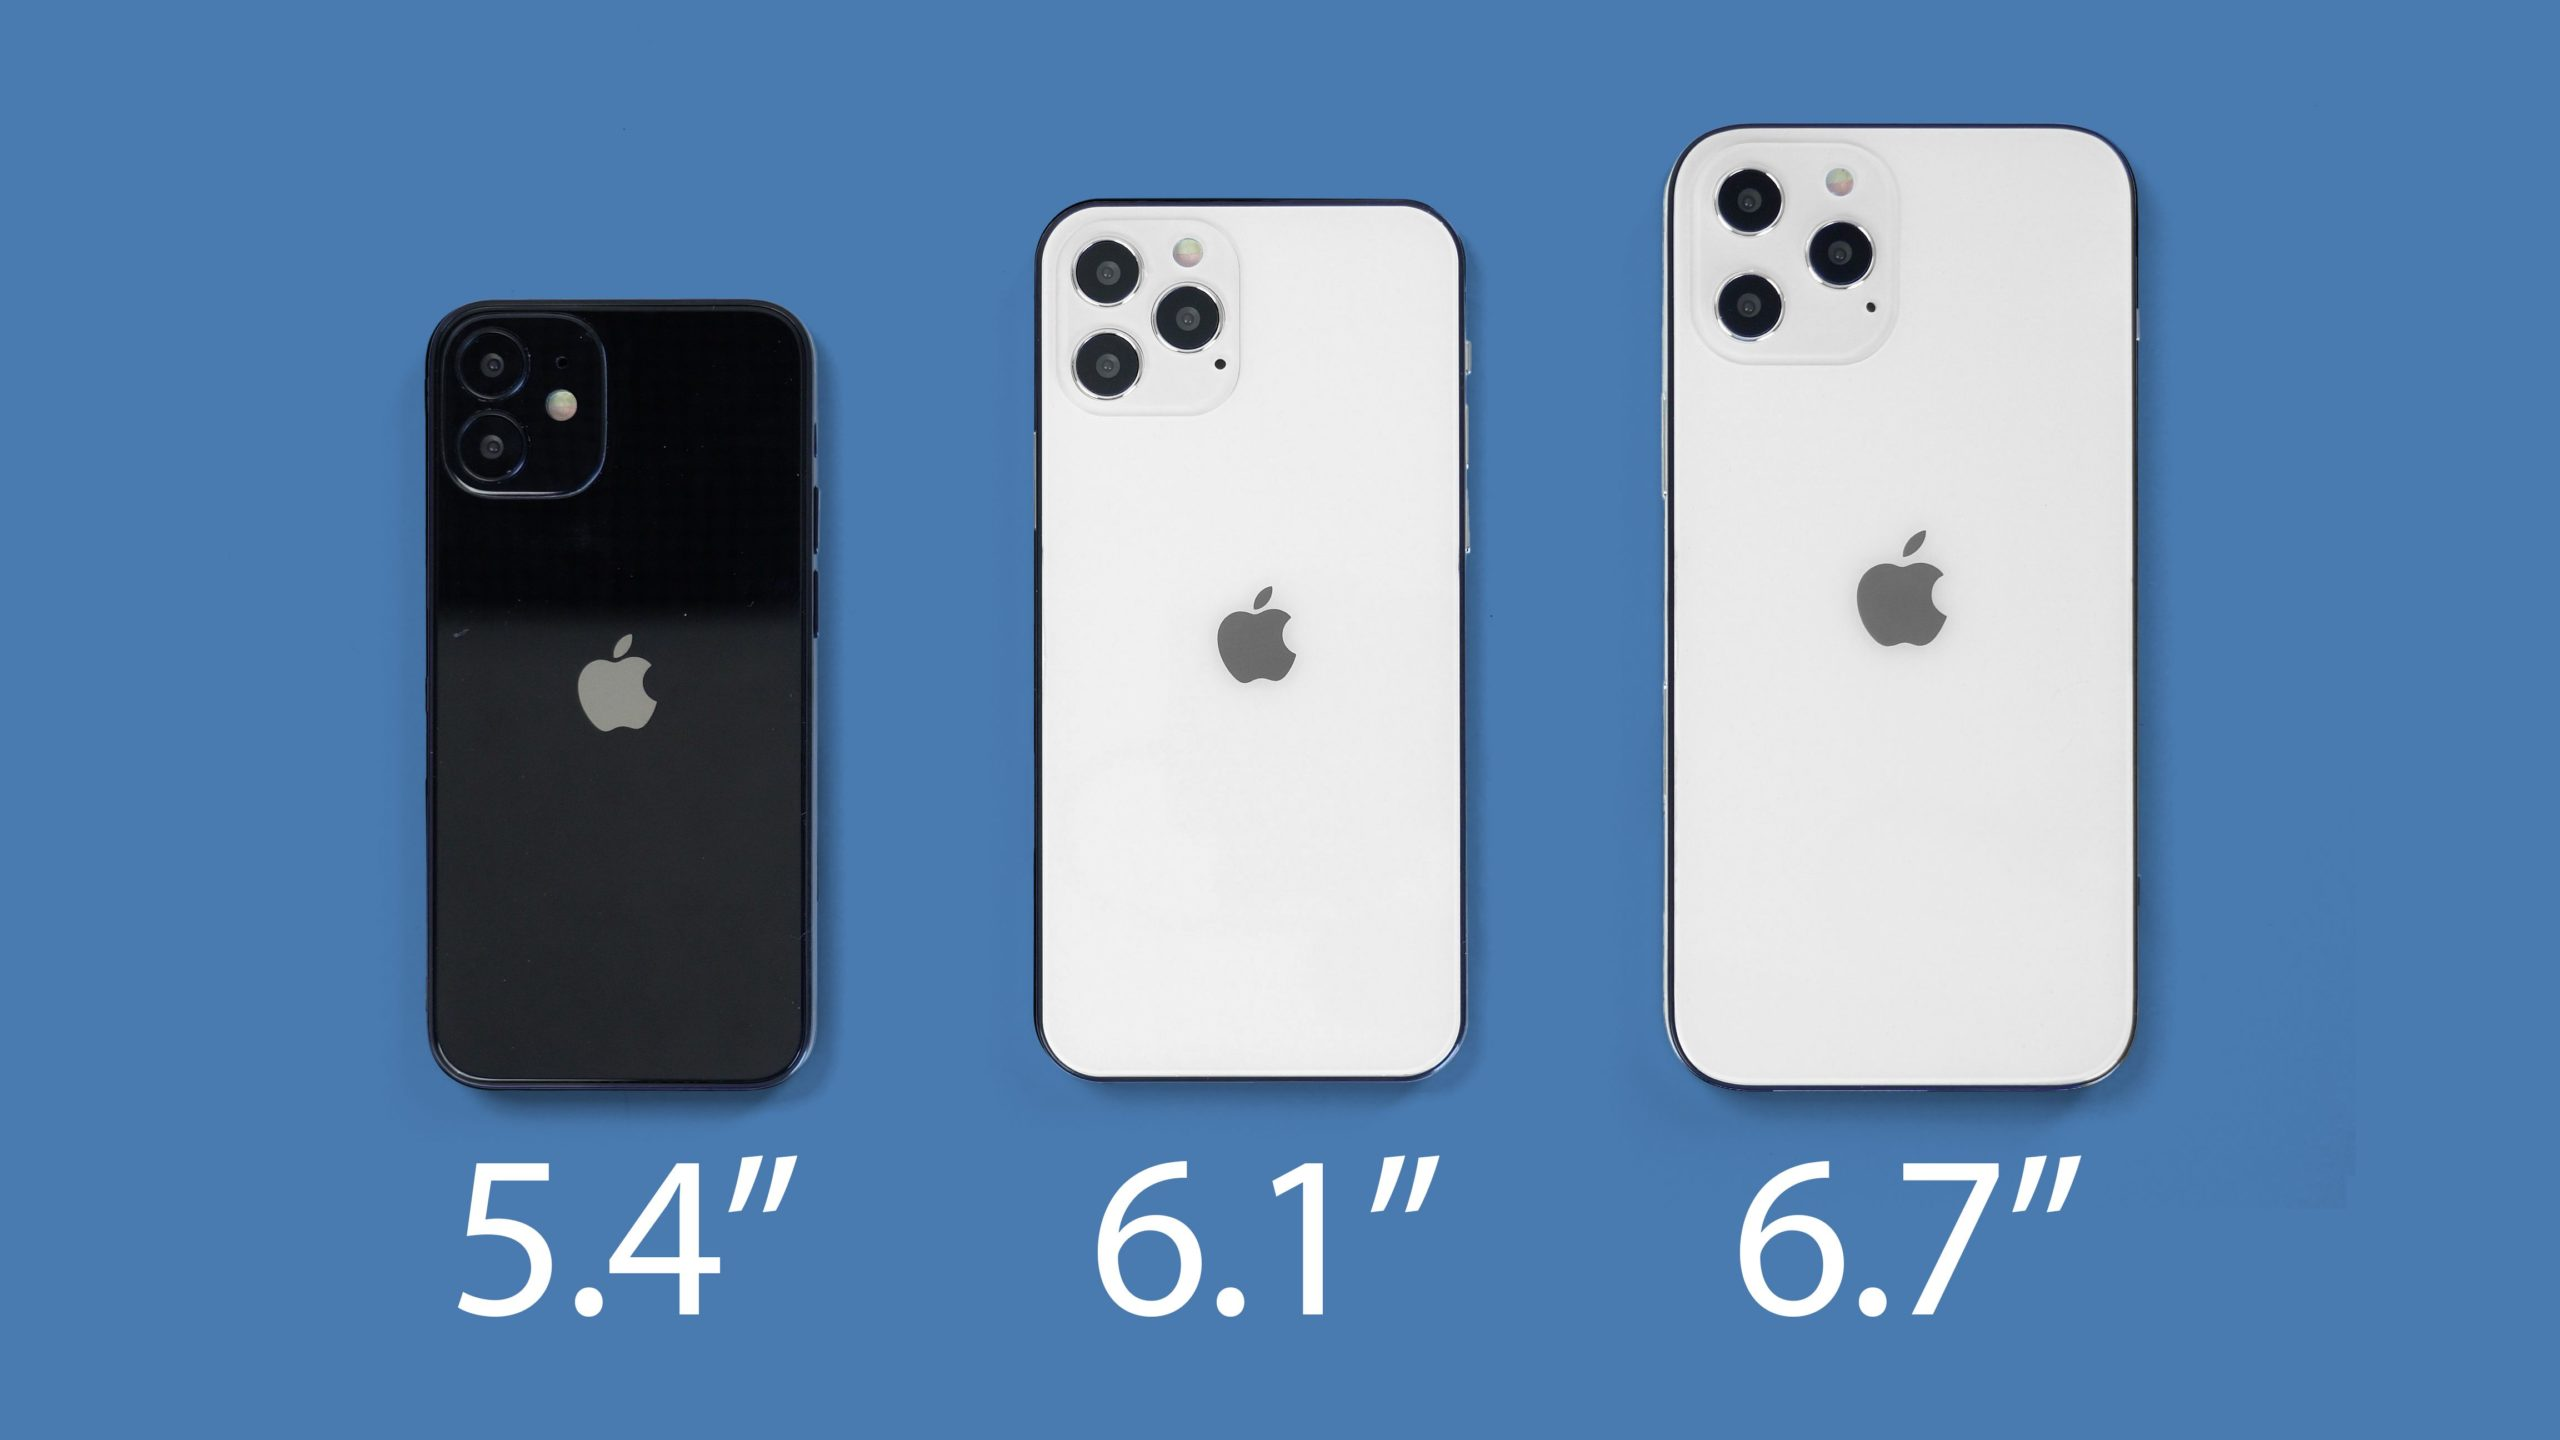 size of variants of upcoming phone